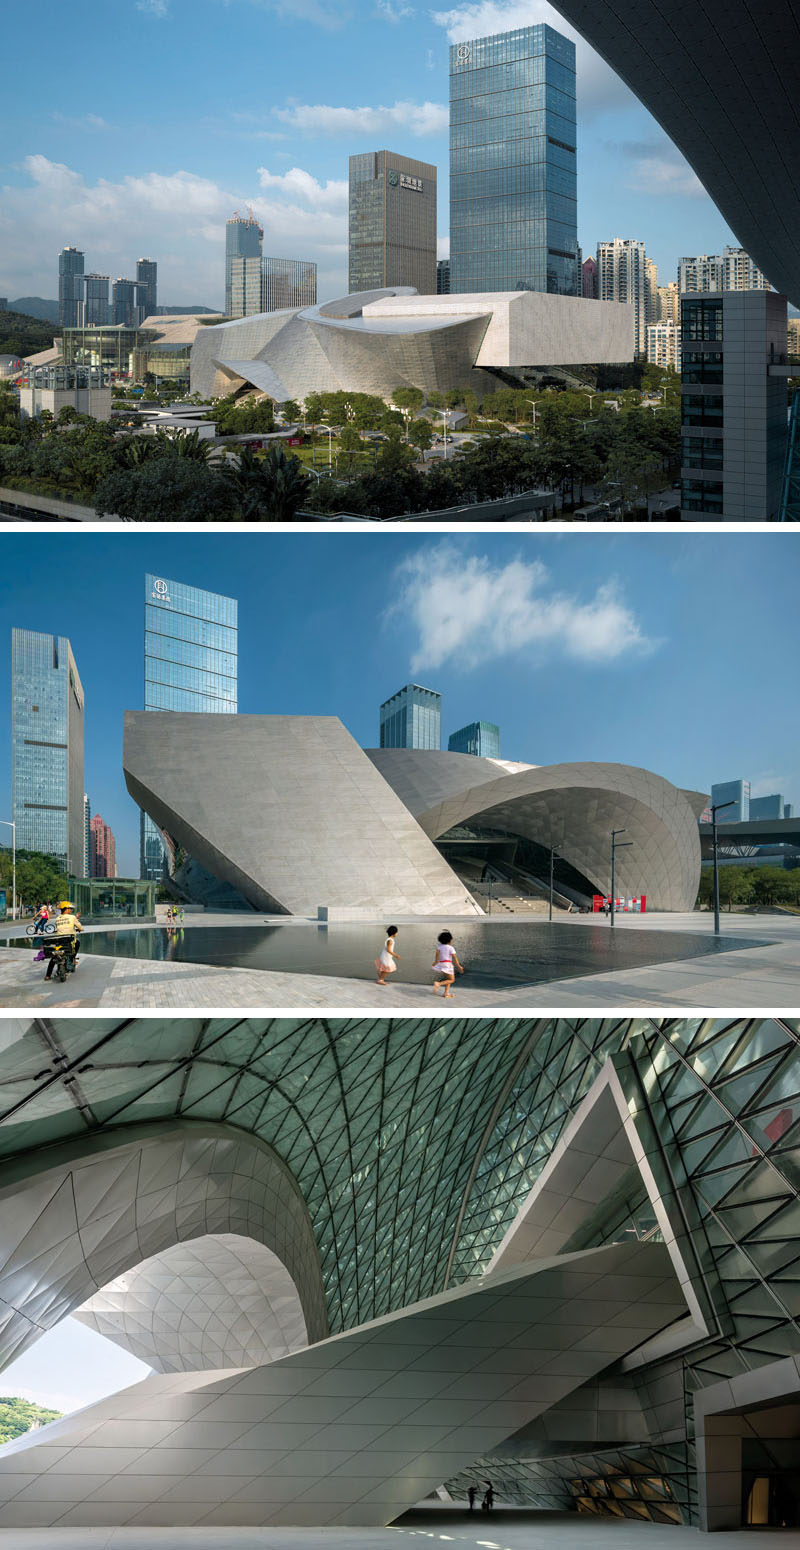 This massive building in Shezhen, China, is actual two separate structures, the Museum of Contemporary Art and The Planning Exhibition, that have been surrounded by a geometric facade made of natural stone louvers and insulated glass to create the look of a single modern building.